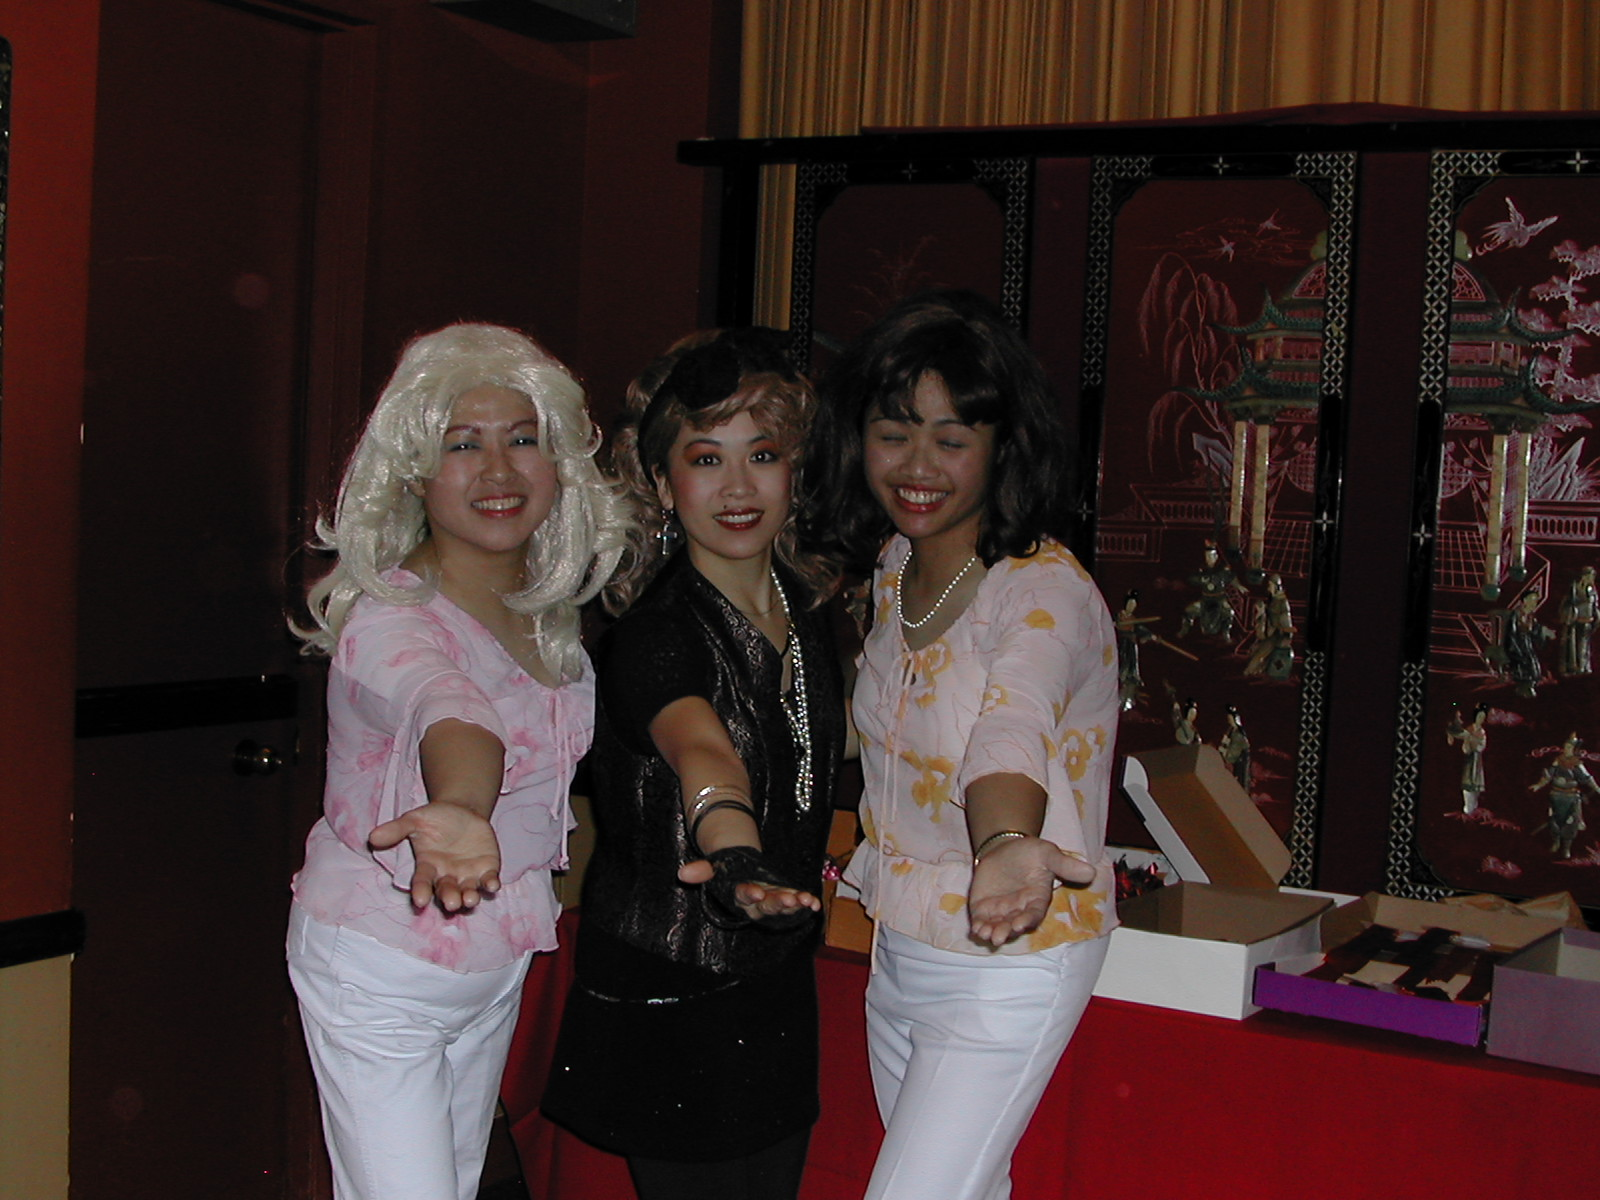 Juli Jung as Madonna (mid) flanked by ABBA